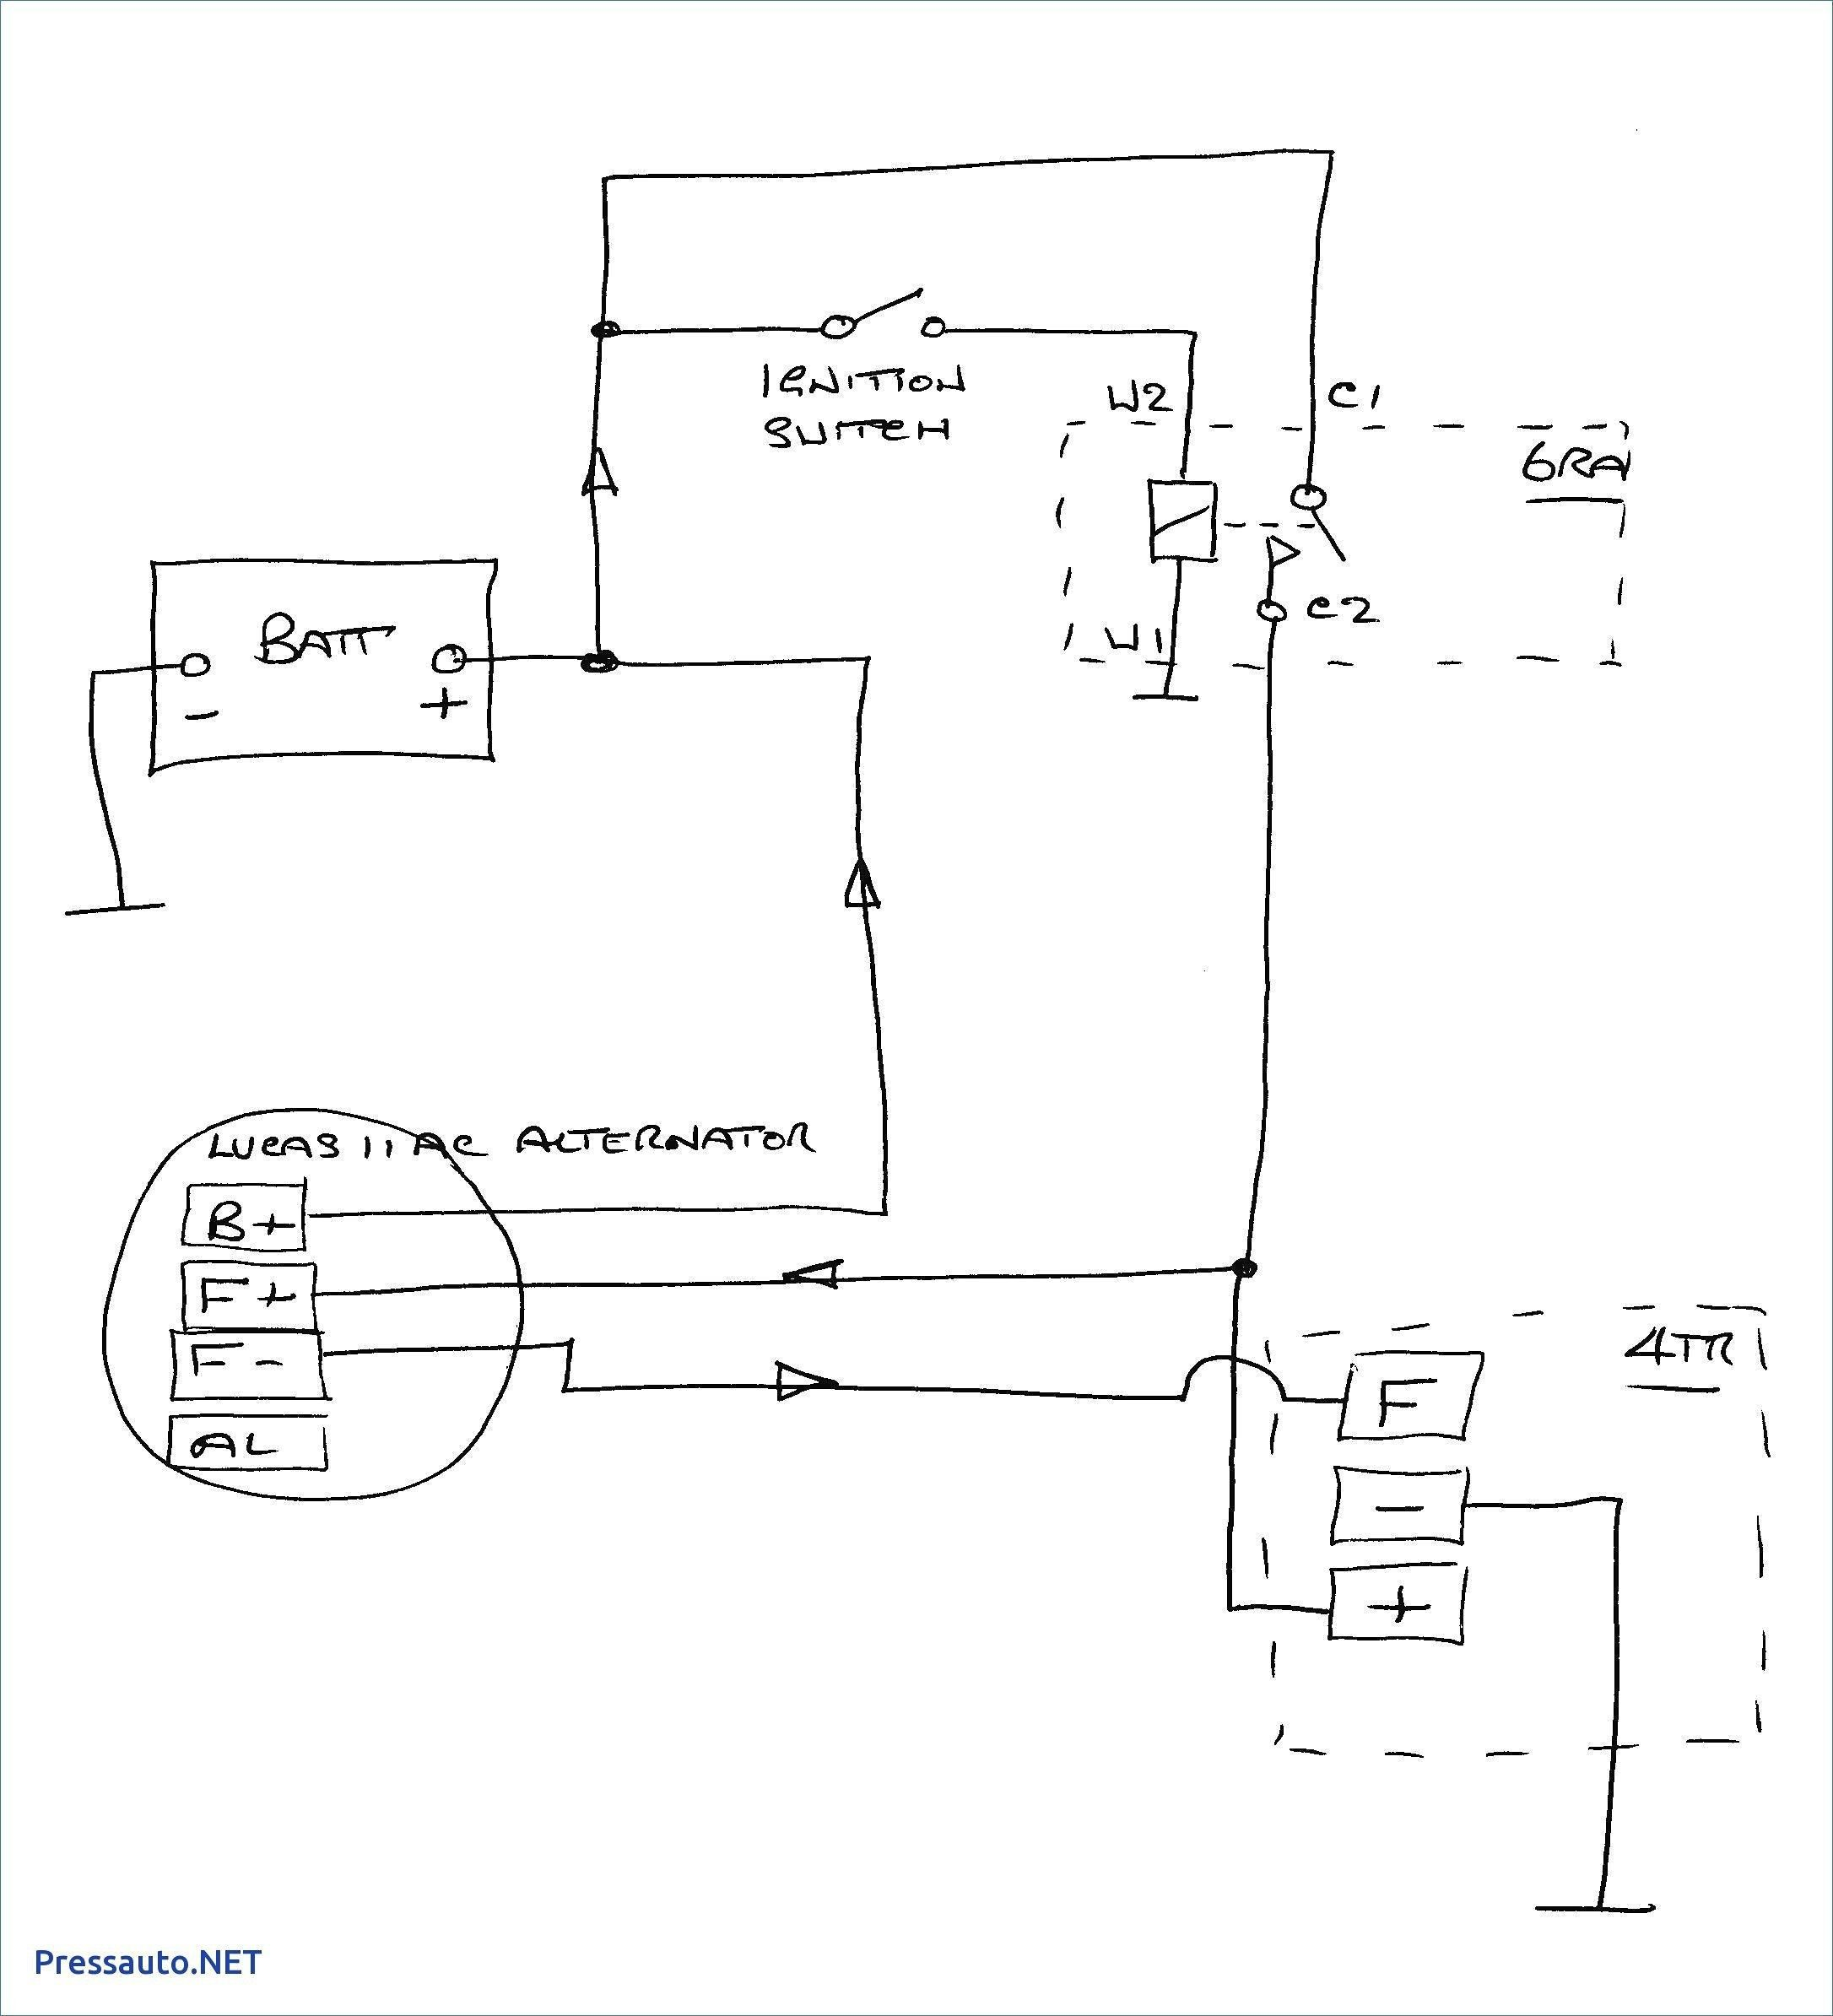 Unique Marelli Generator Wiring Diagram #diagram ... on 84 chevy truck fuse diagram, 84 chevrolet 2500 wiring diagram, chevrolet 1983 pickup wire diagram, 2007 silverado fuse diagram, 2001 silverado 2500 wiring diagram, 84 chevy truck charging system diagram, panel push button start wire diagram, silverado trailer brake wiring diagram,